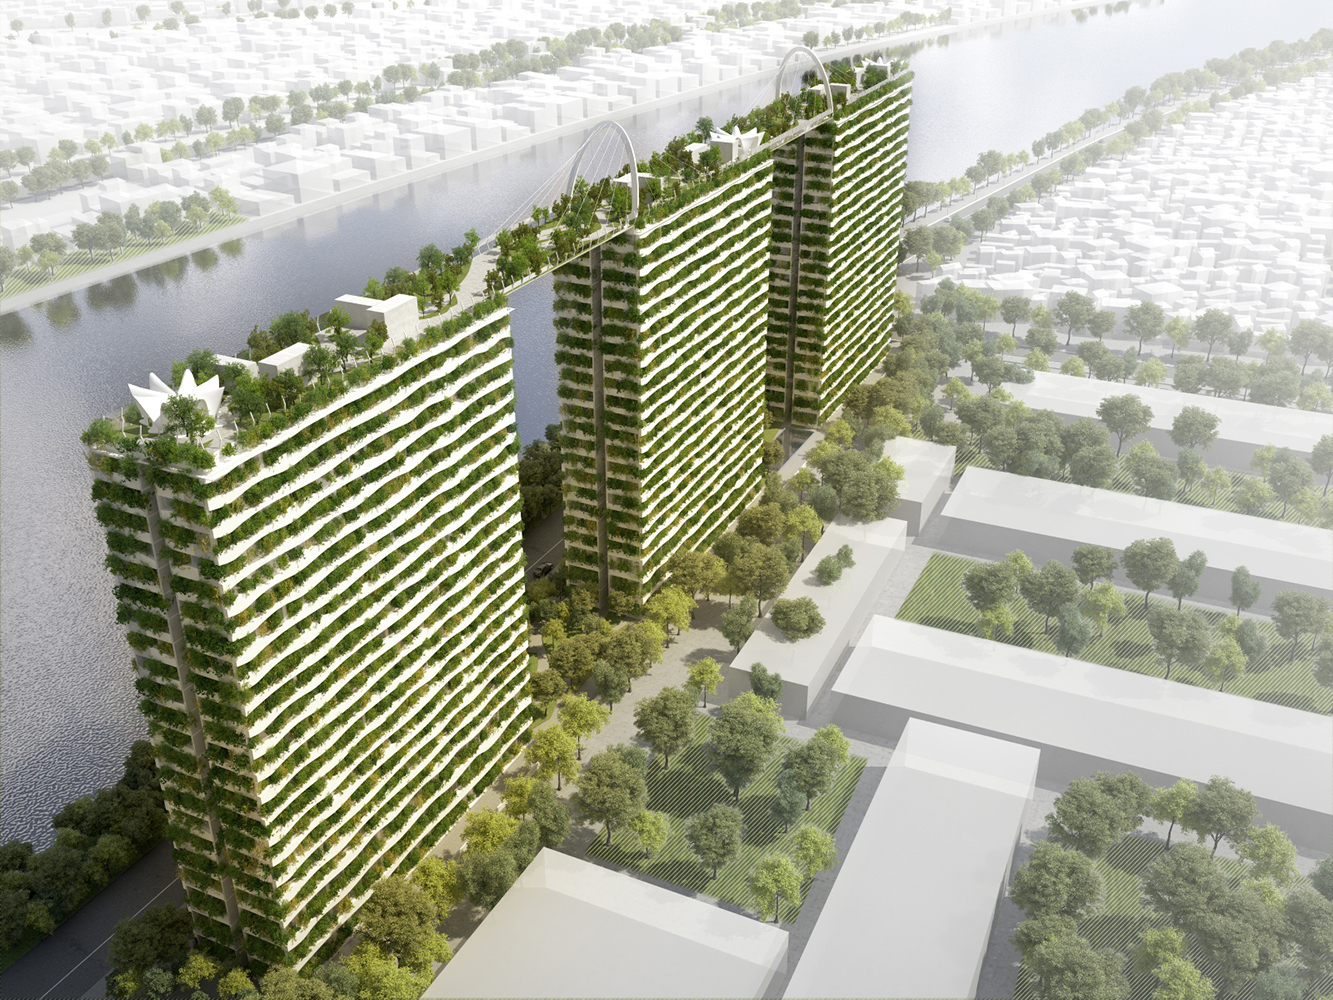 Khmer Exterior Apartment Vo Trong Nghia Architects Diamond Lotus Brings Greenery to Ho Chi Minh City in Cambodia